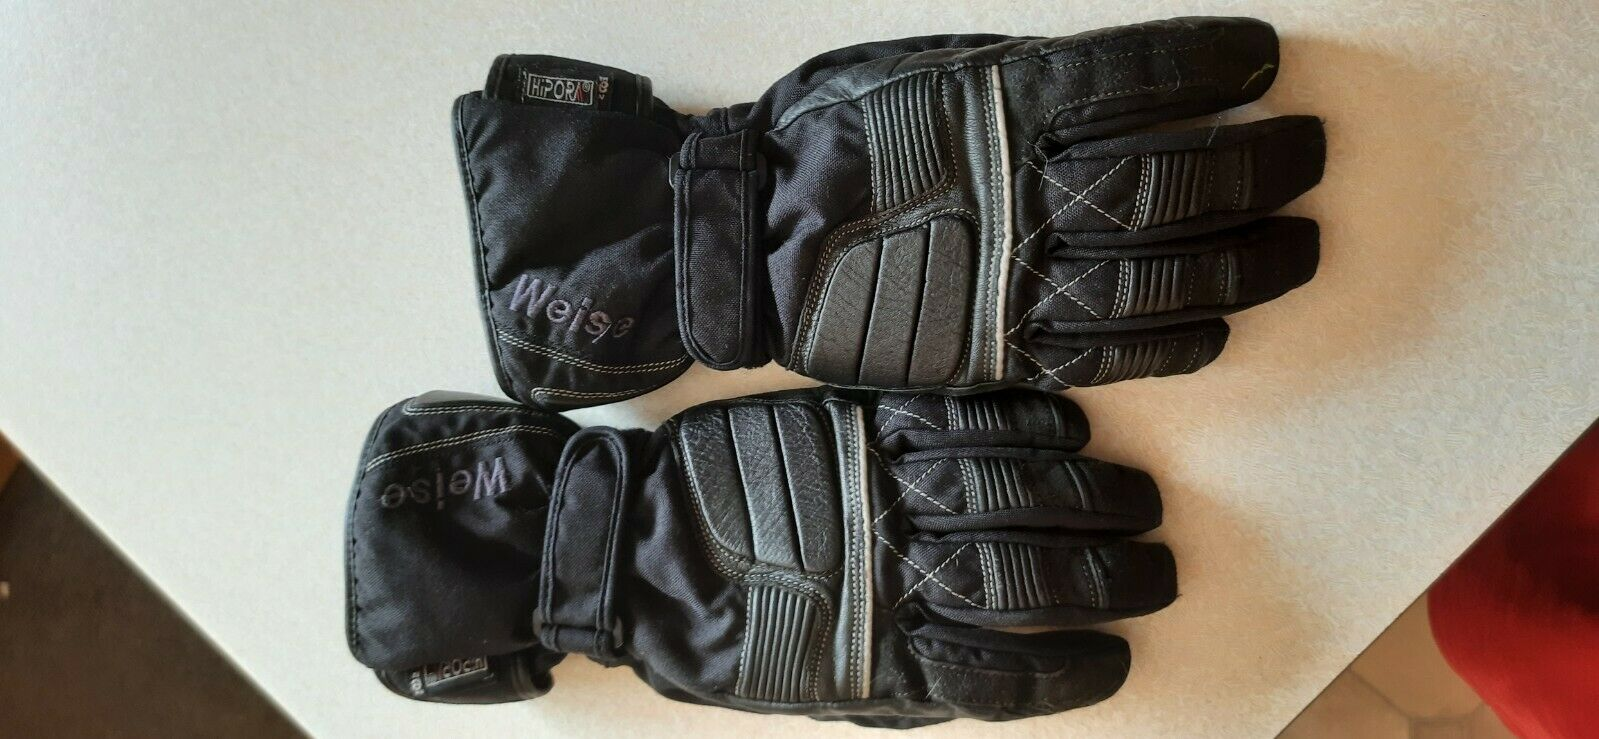 weise gloves thinsulate size L